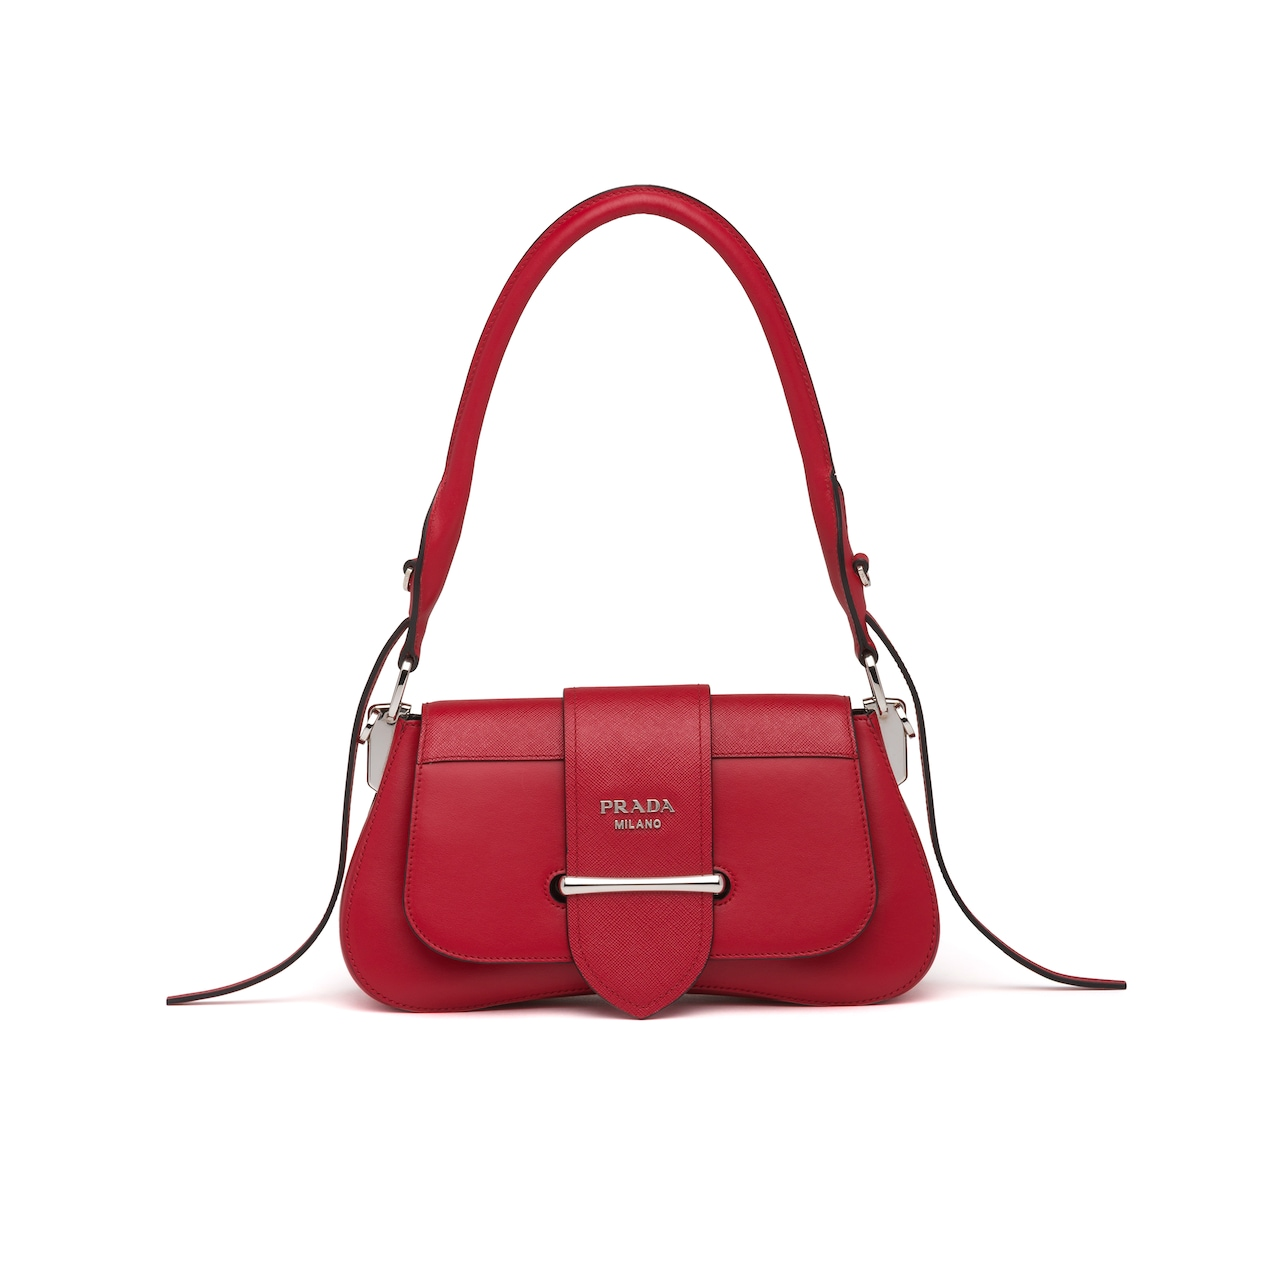 Prada Prada Sidonie shoulder bag 1